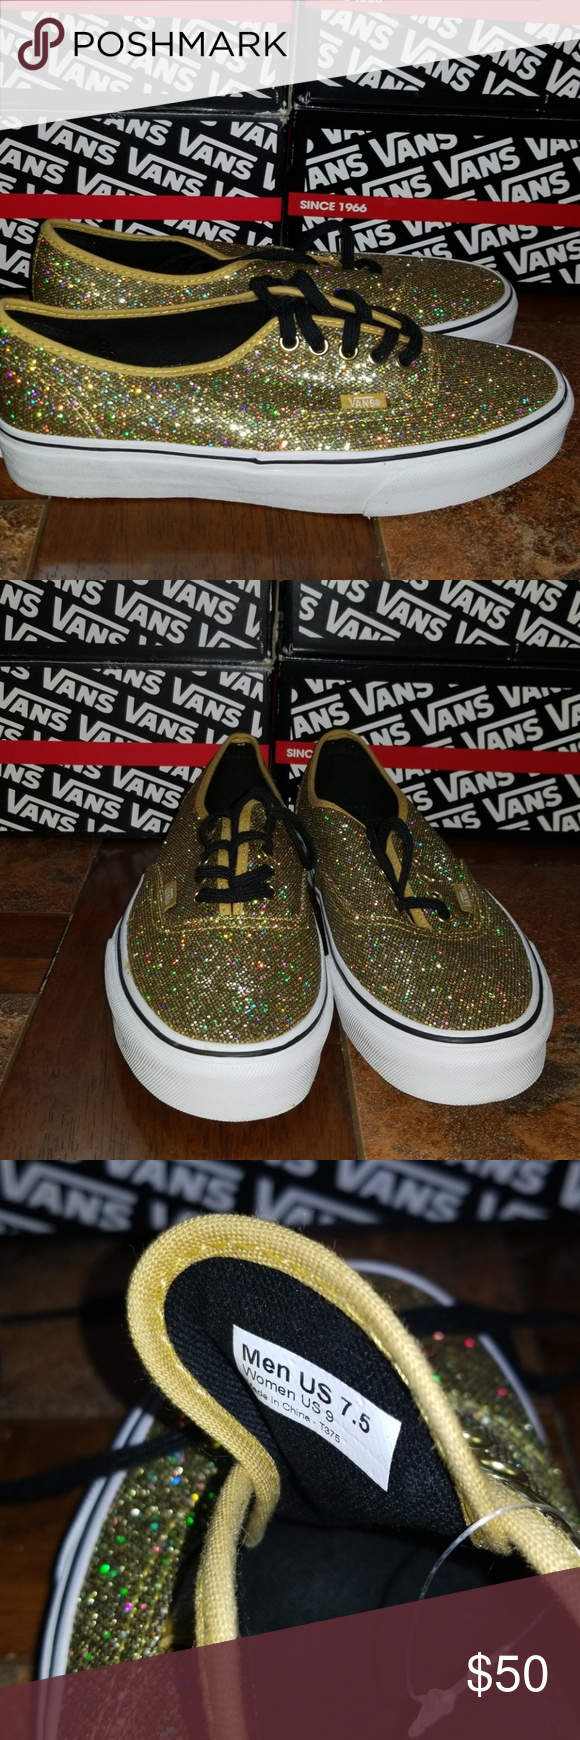 9406f88a4f Vans Mens 7.5  Womens 9 Van s Authentic Glitter Gold Mens 7.5   Womens 9  New Never worn before Will accept reasonable offers. Vans Shoes Sneakers